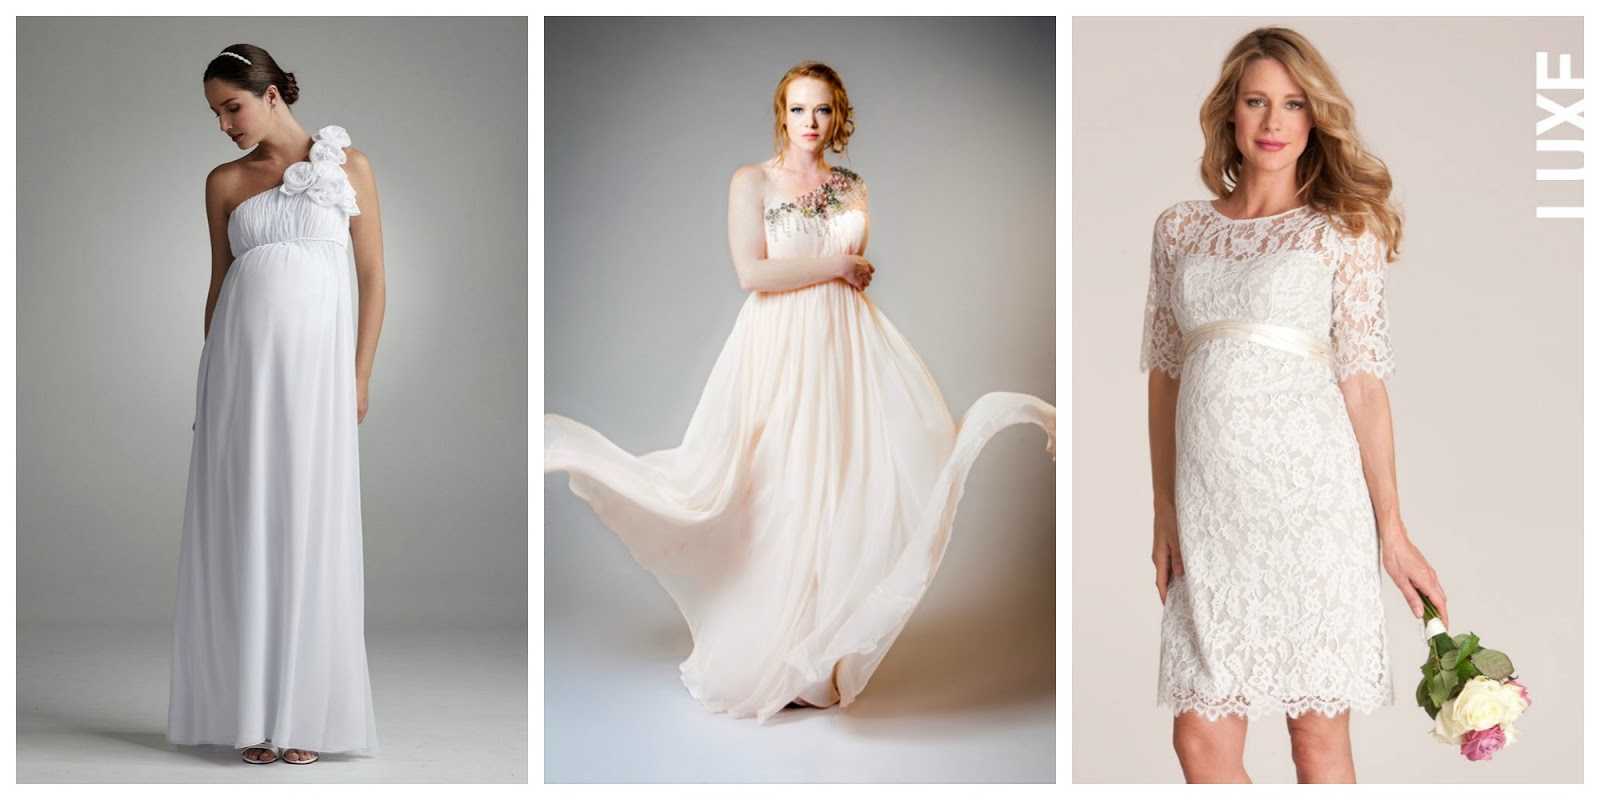 Wedding Wednesday: Maternity Wedding Fashion (Guest Post